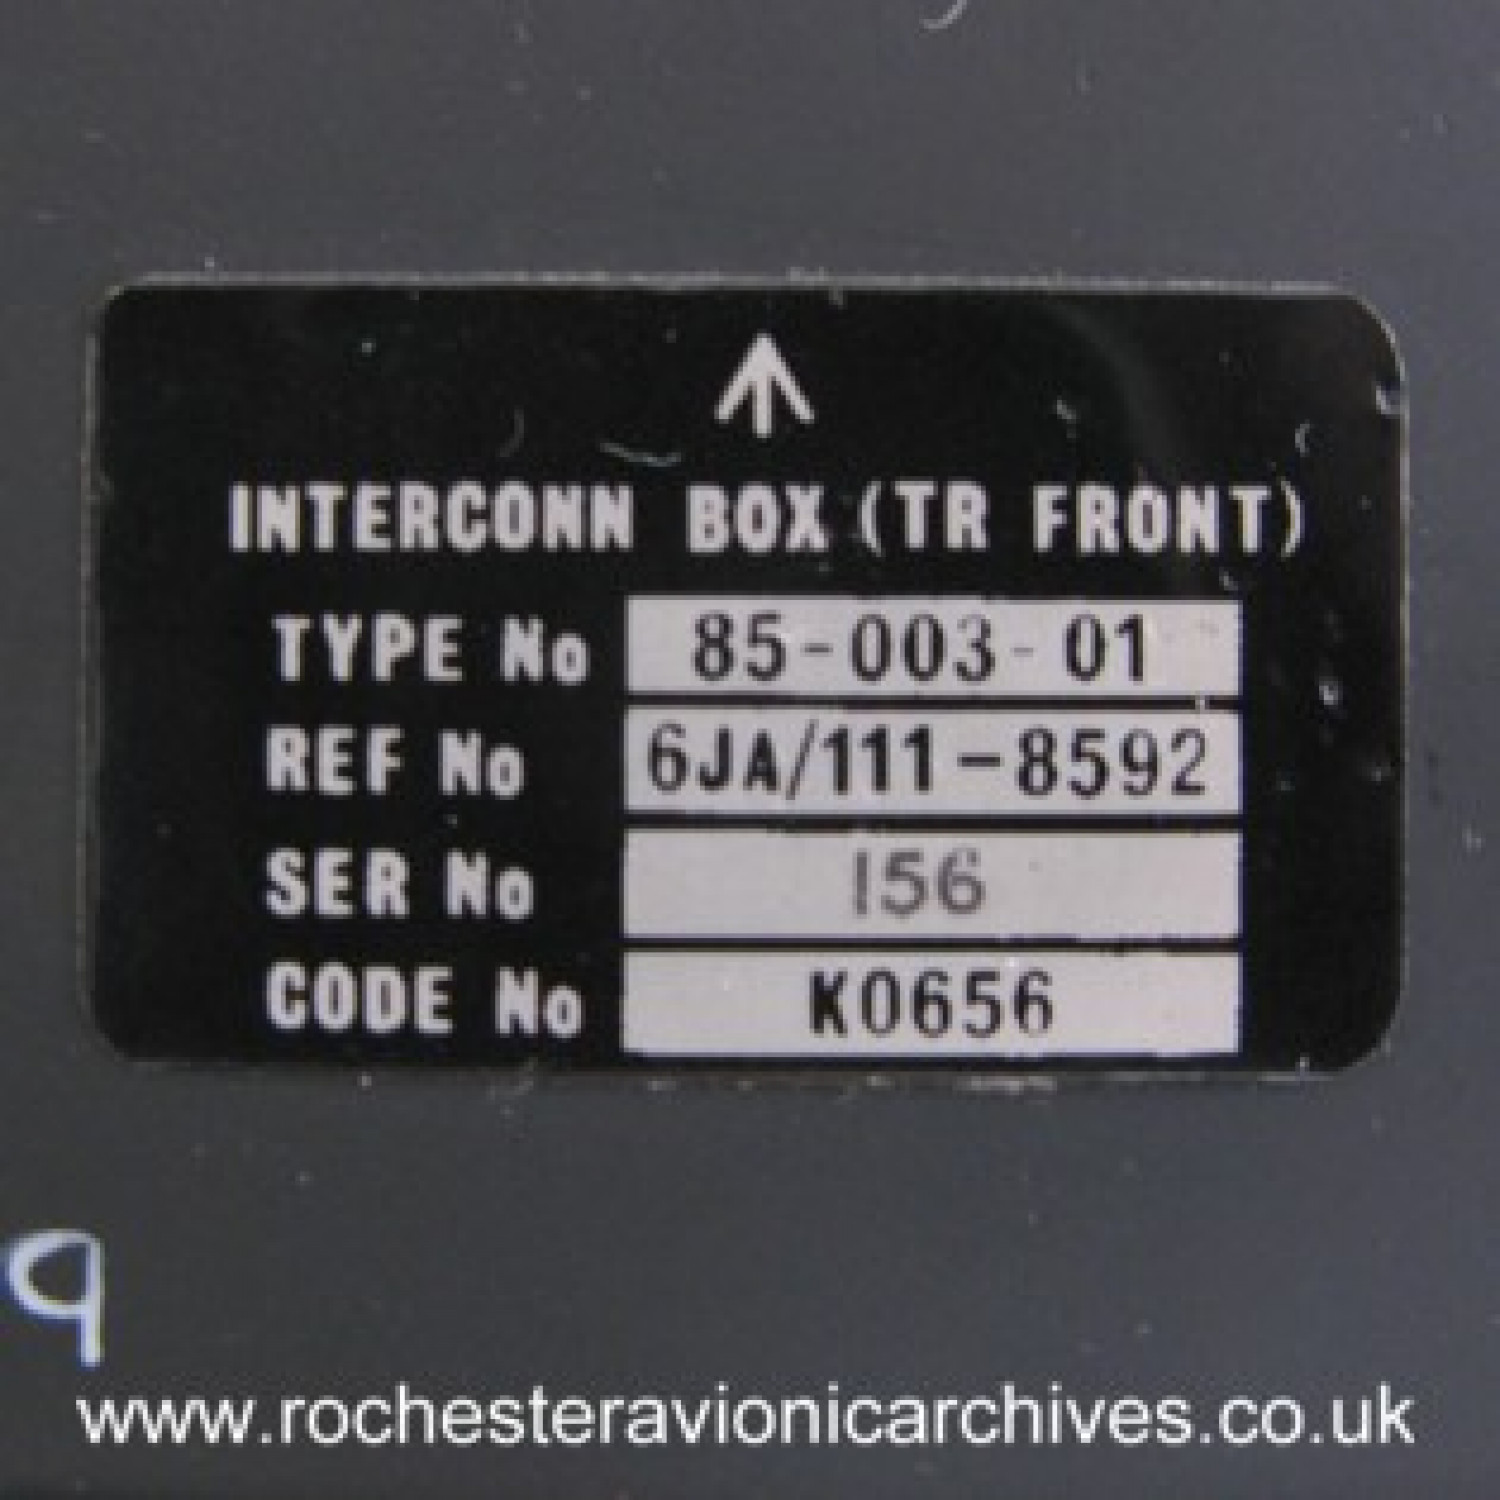 Interconn Box